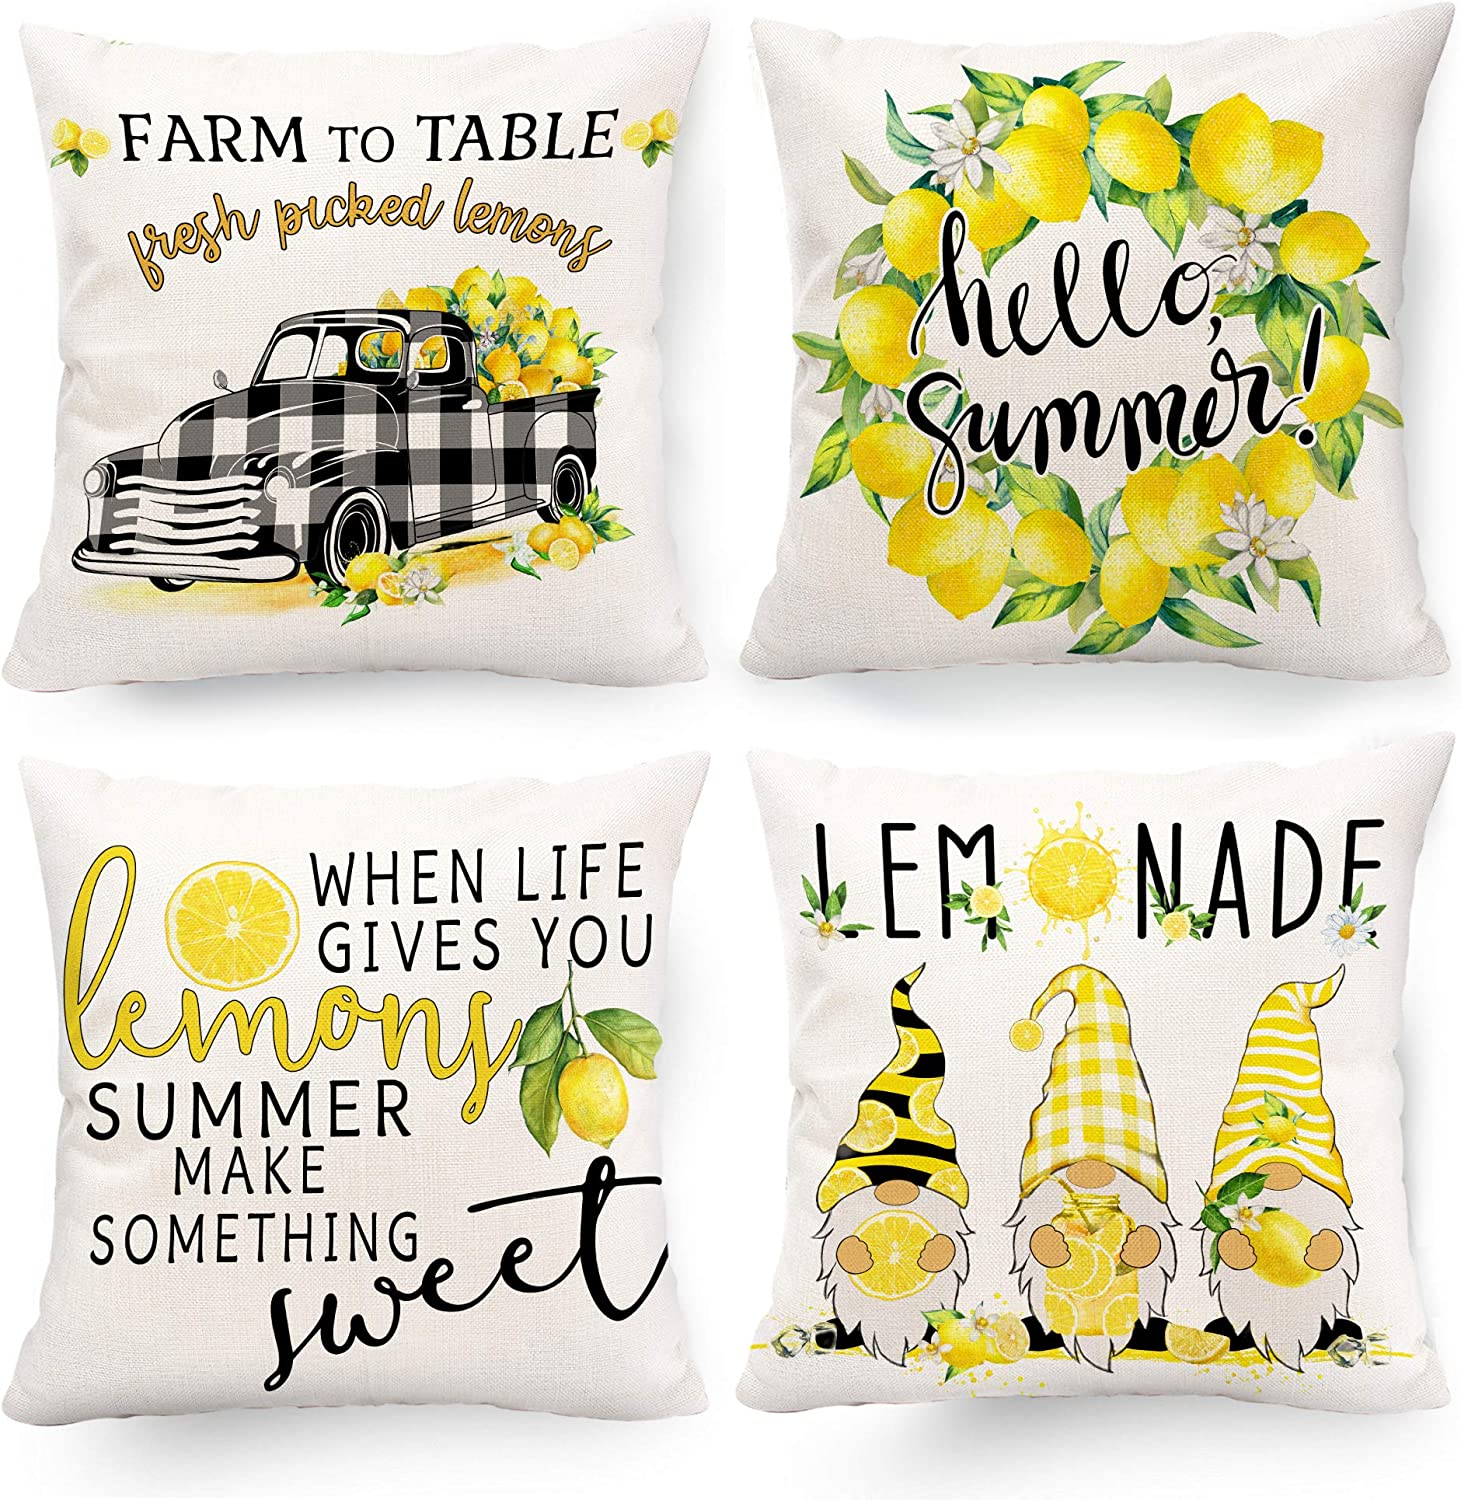 Hexagram Decorative Summer Pillow Covers 20 x 20, Linen Yellow Lemon Decor Buffalo Plaid Truck Gnomes Patterned Throw Pillow Covers Set of 4 for Living Room Couch Sofa Patio Summer Yellow Home Decor